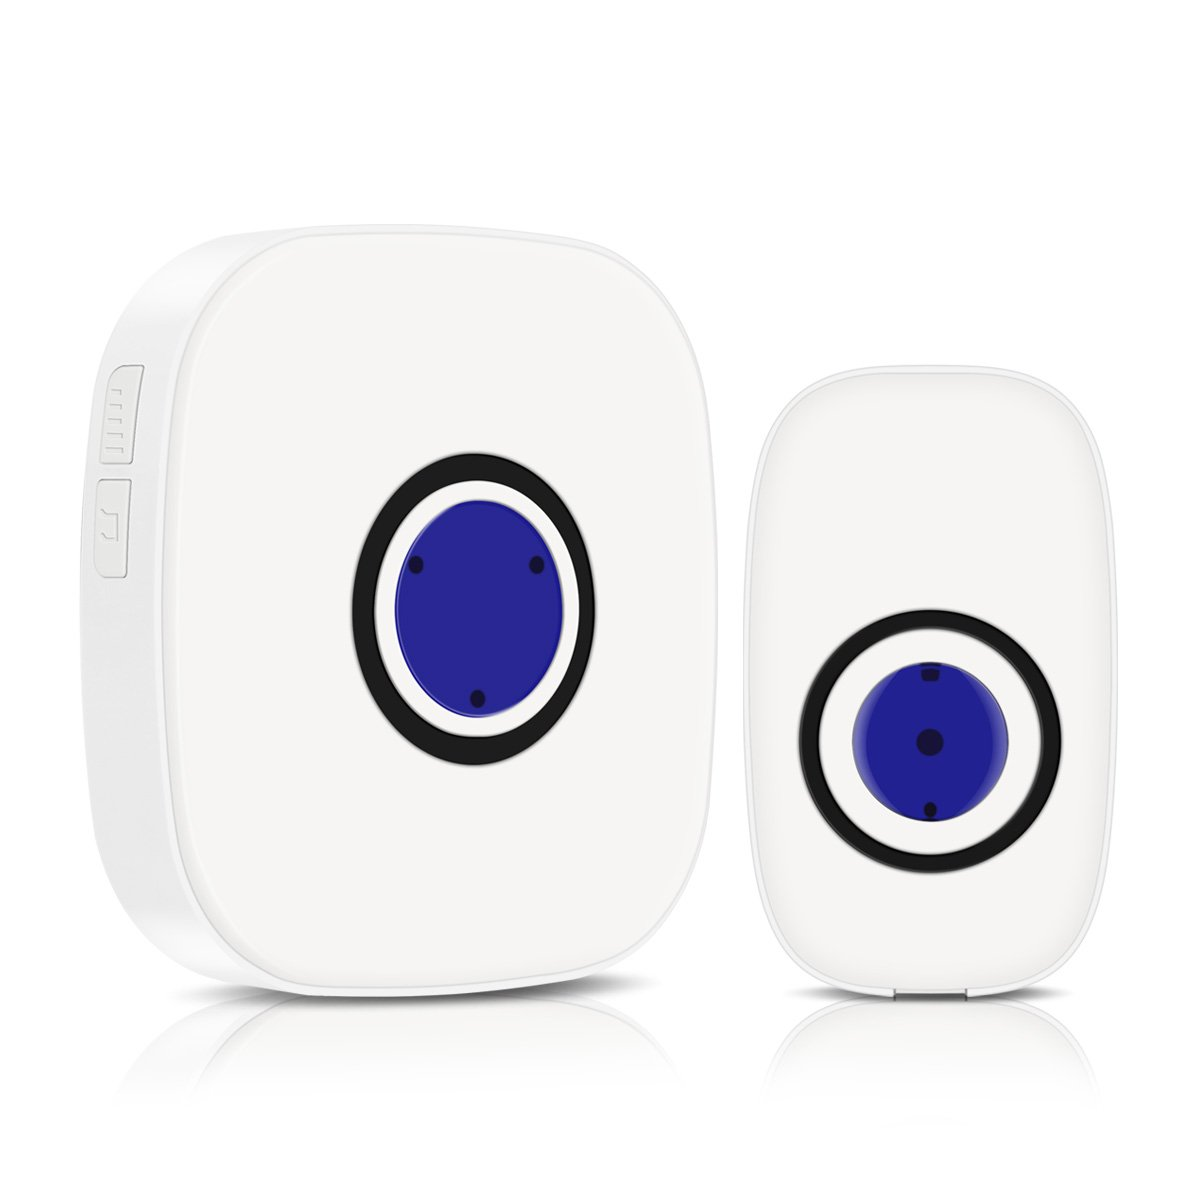 CoastaCloud Model C Wireless Doorbell Chime Alert System, Long Range over 400-feet Range with 38 Chimes, No Batteries Required for Receiver, with Sound and LED Flash Door Bell for Home